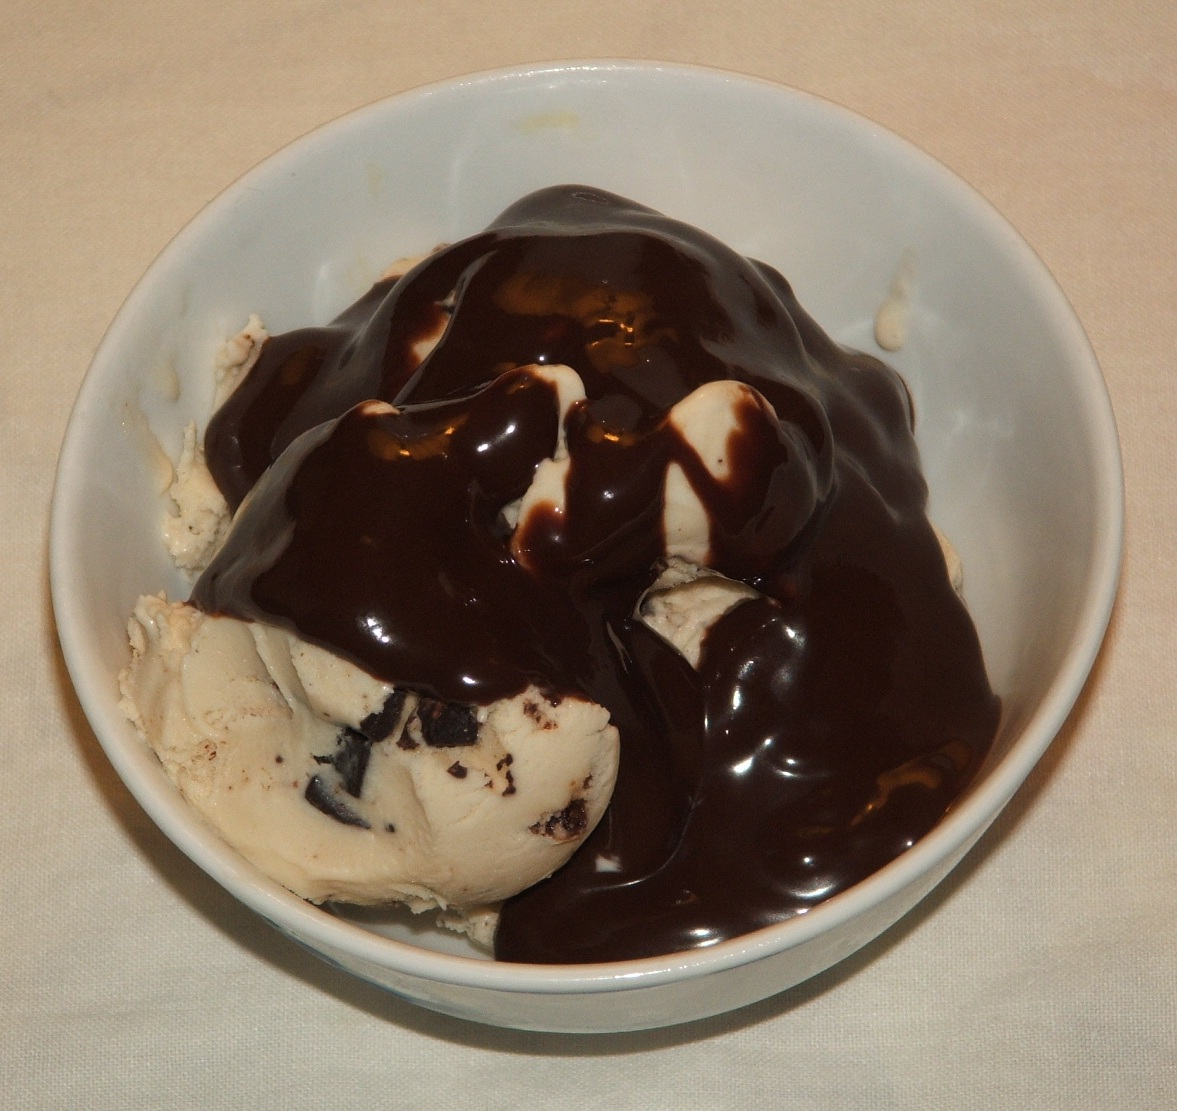 File:Chocolate syrup topping on ice cream.JPG - Wikipedia, the free ...